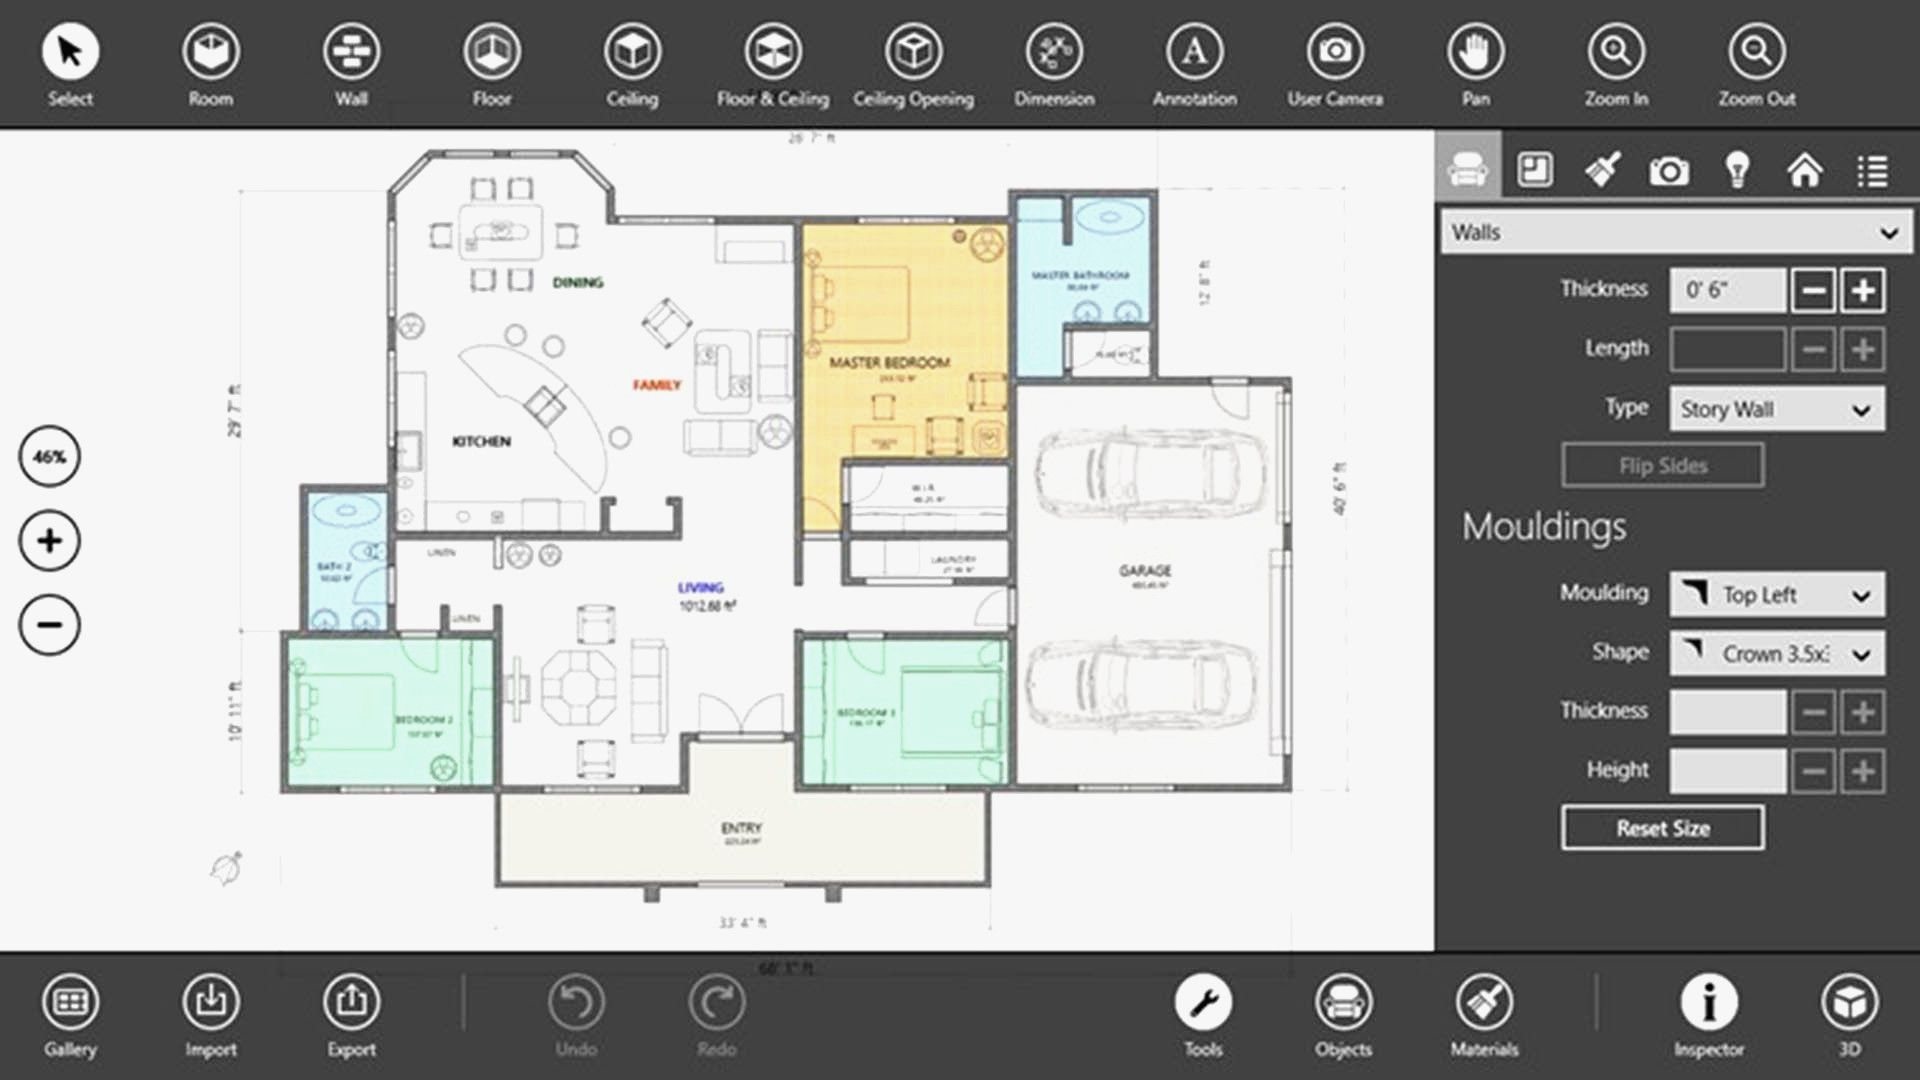 Free House Plan Design App In 2020 Floor Plan Design Interior Design Apps Free House Plans